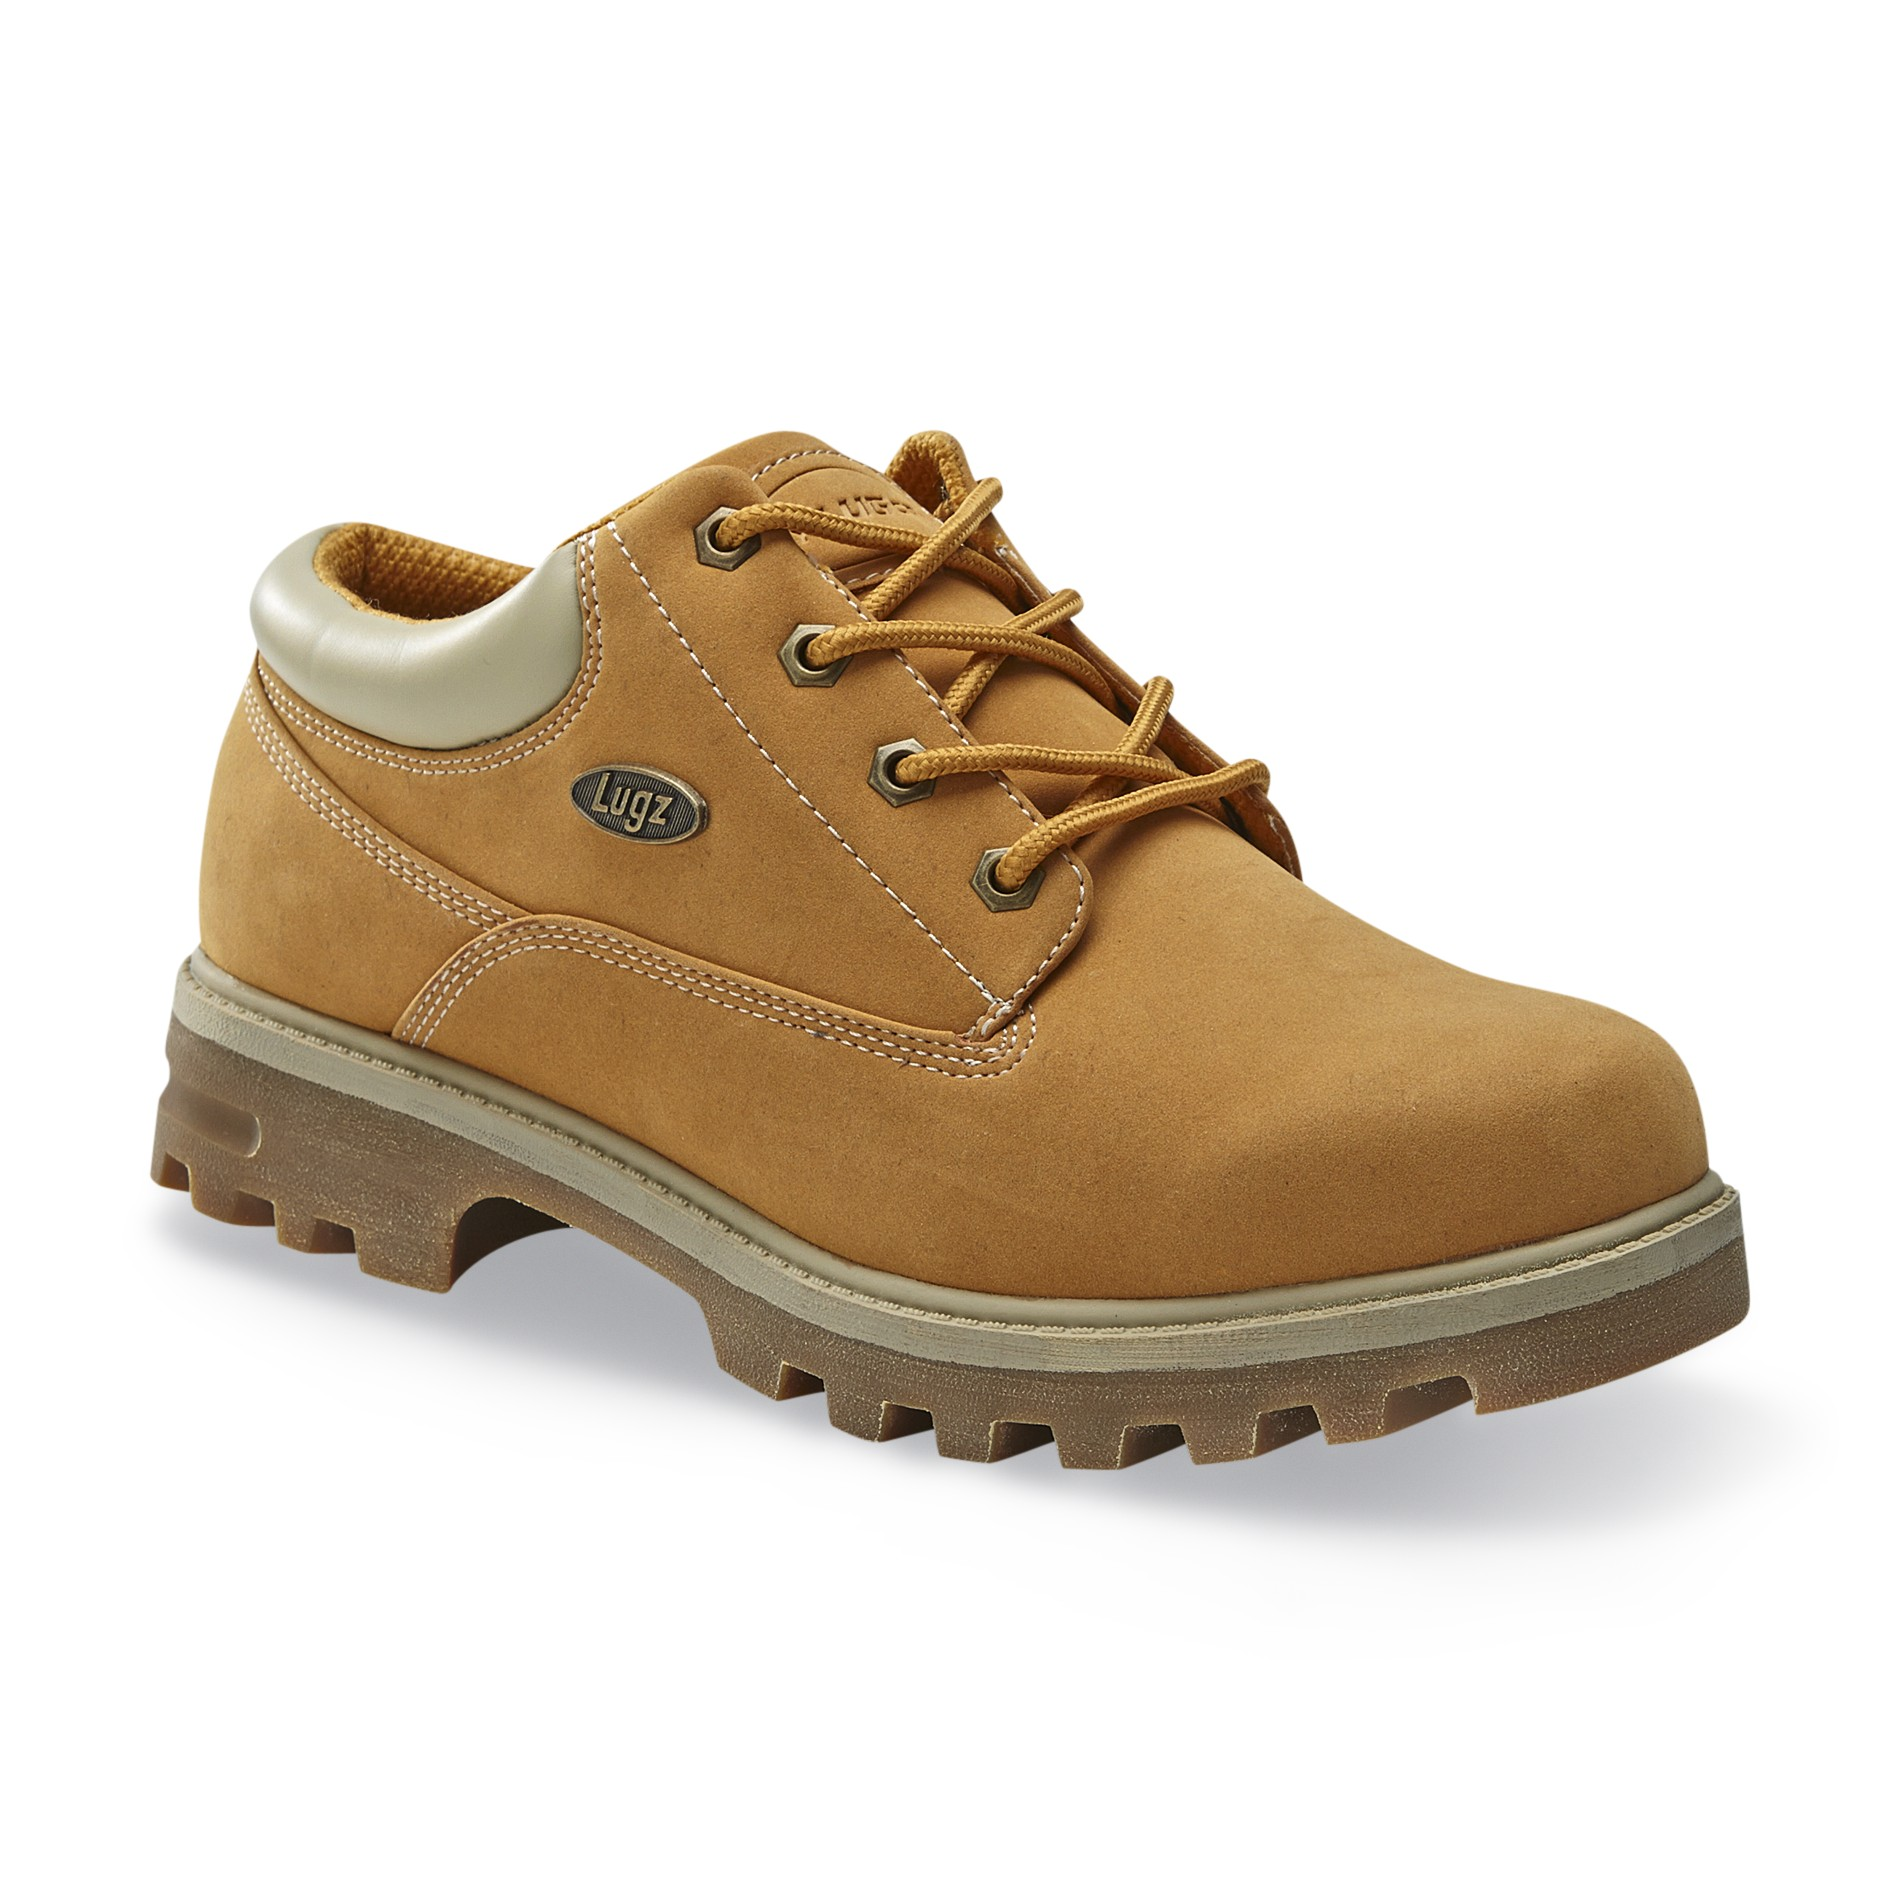 Lugz boots lugz lugz menu0027s empire lo boot - tan HYQQKSU